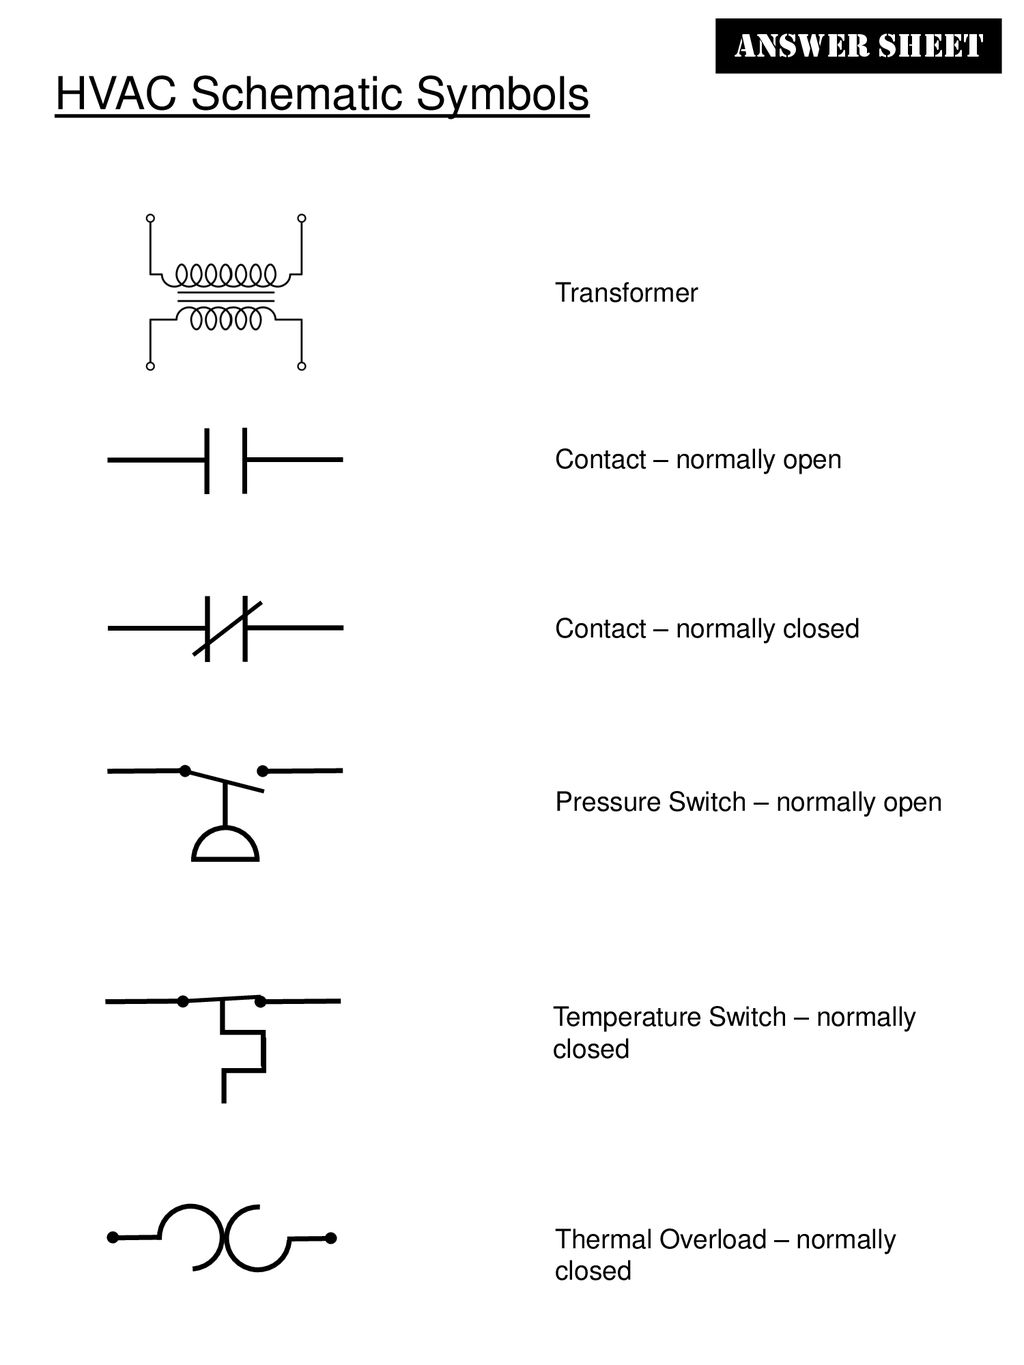 HVAC Schematic Symbols - ppt download | Refrigeration Components Wiring Diagram Symbols |  | SlidePlayer